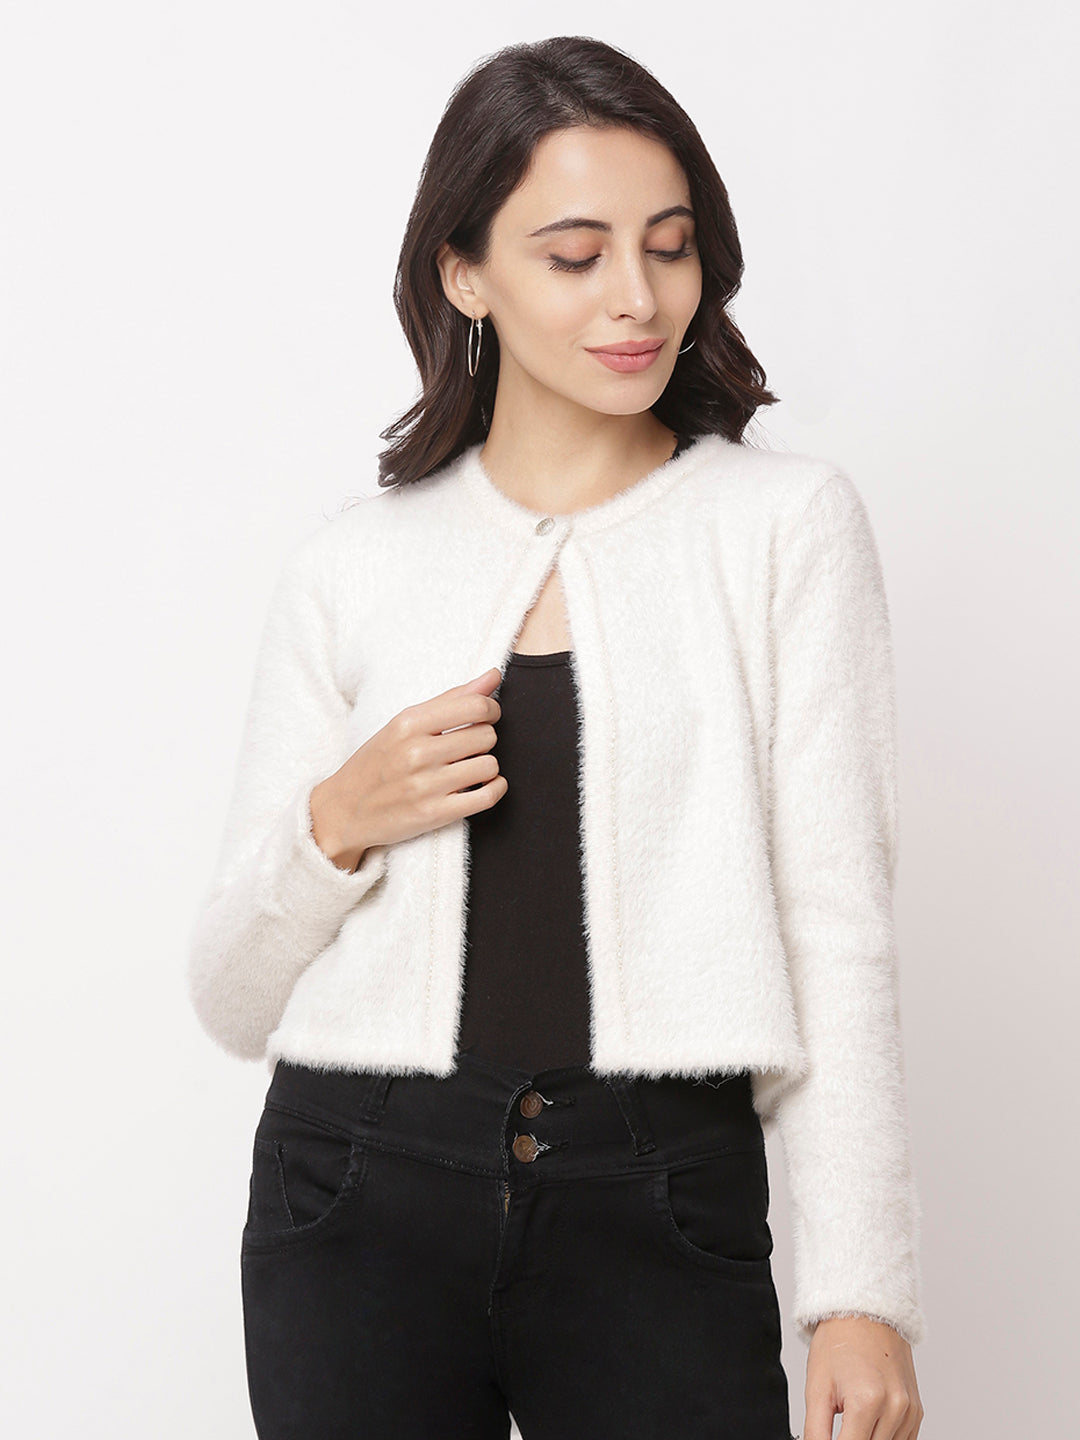 Globus Off White Solid Cardigan-1